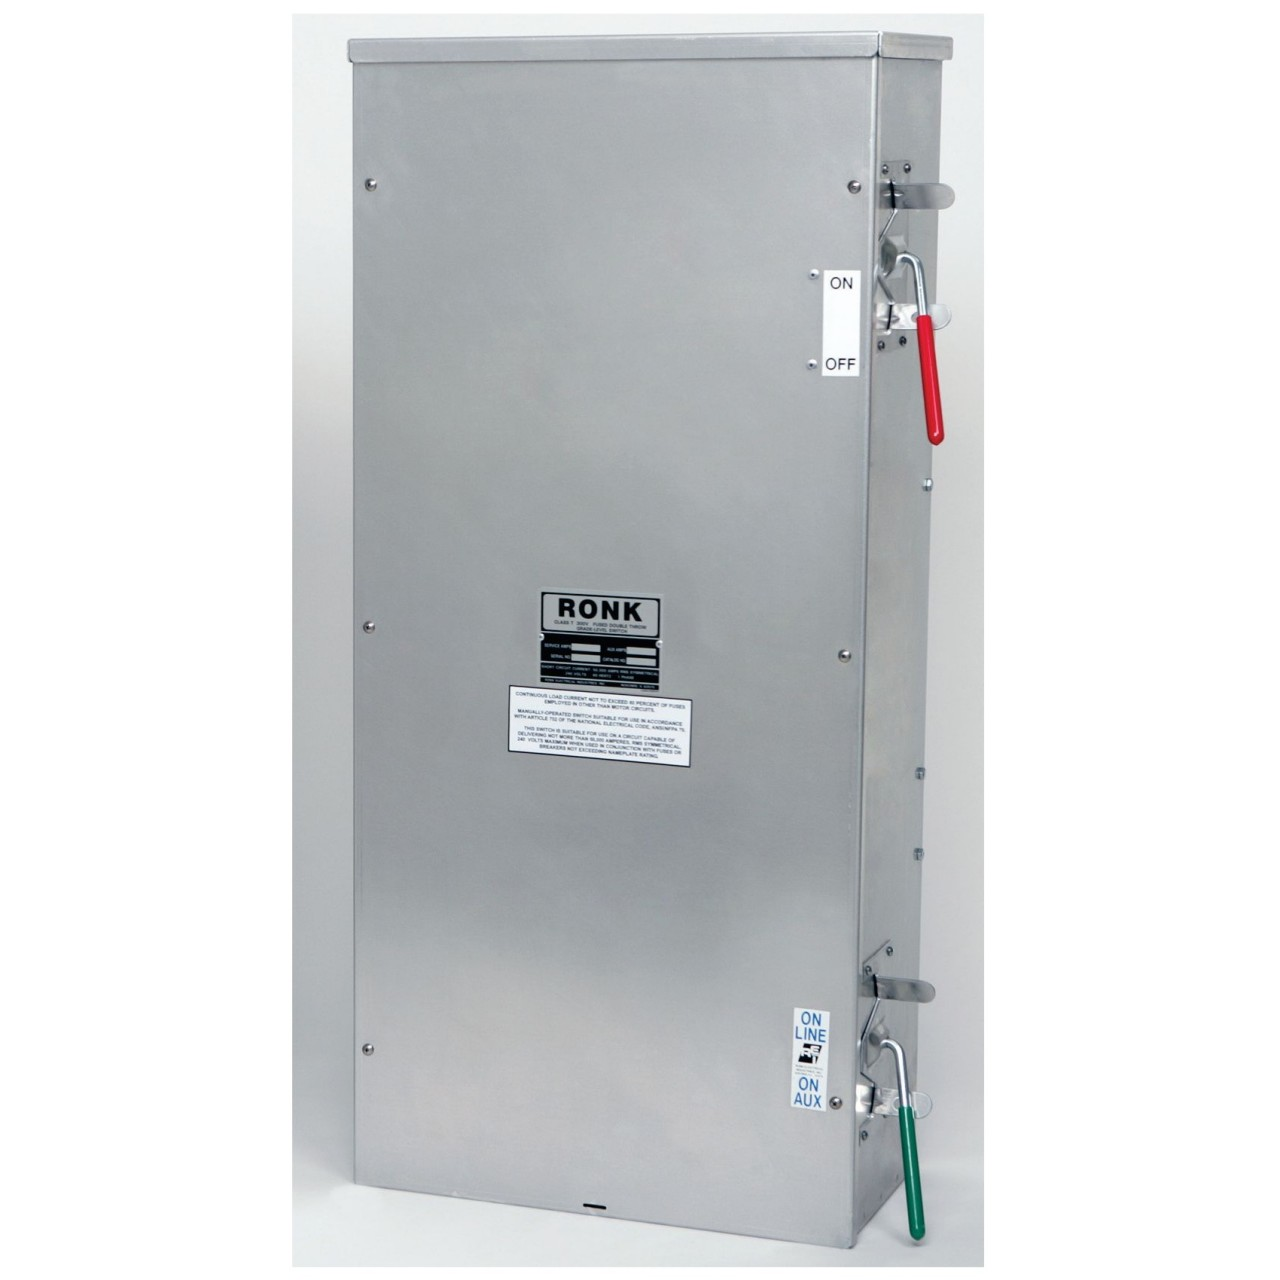 Ronk 7225 Transfer Switch (1Ph, 200A)